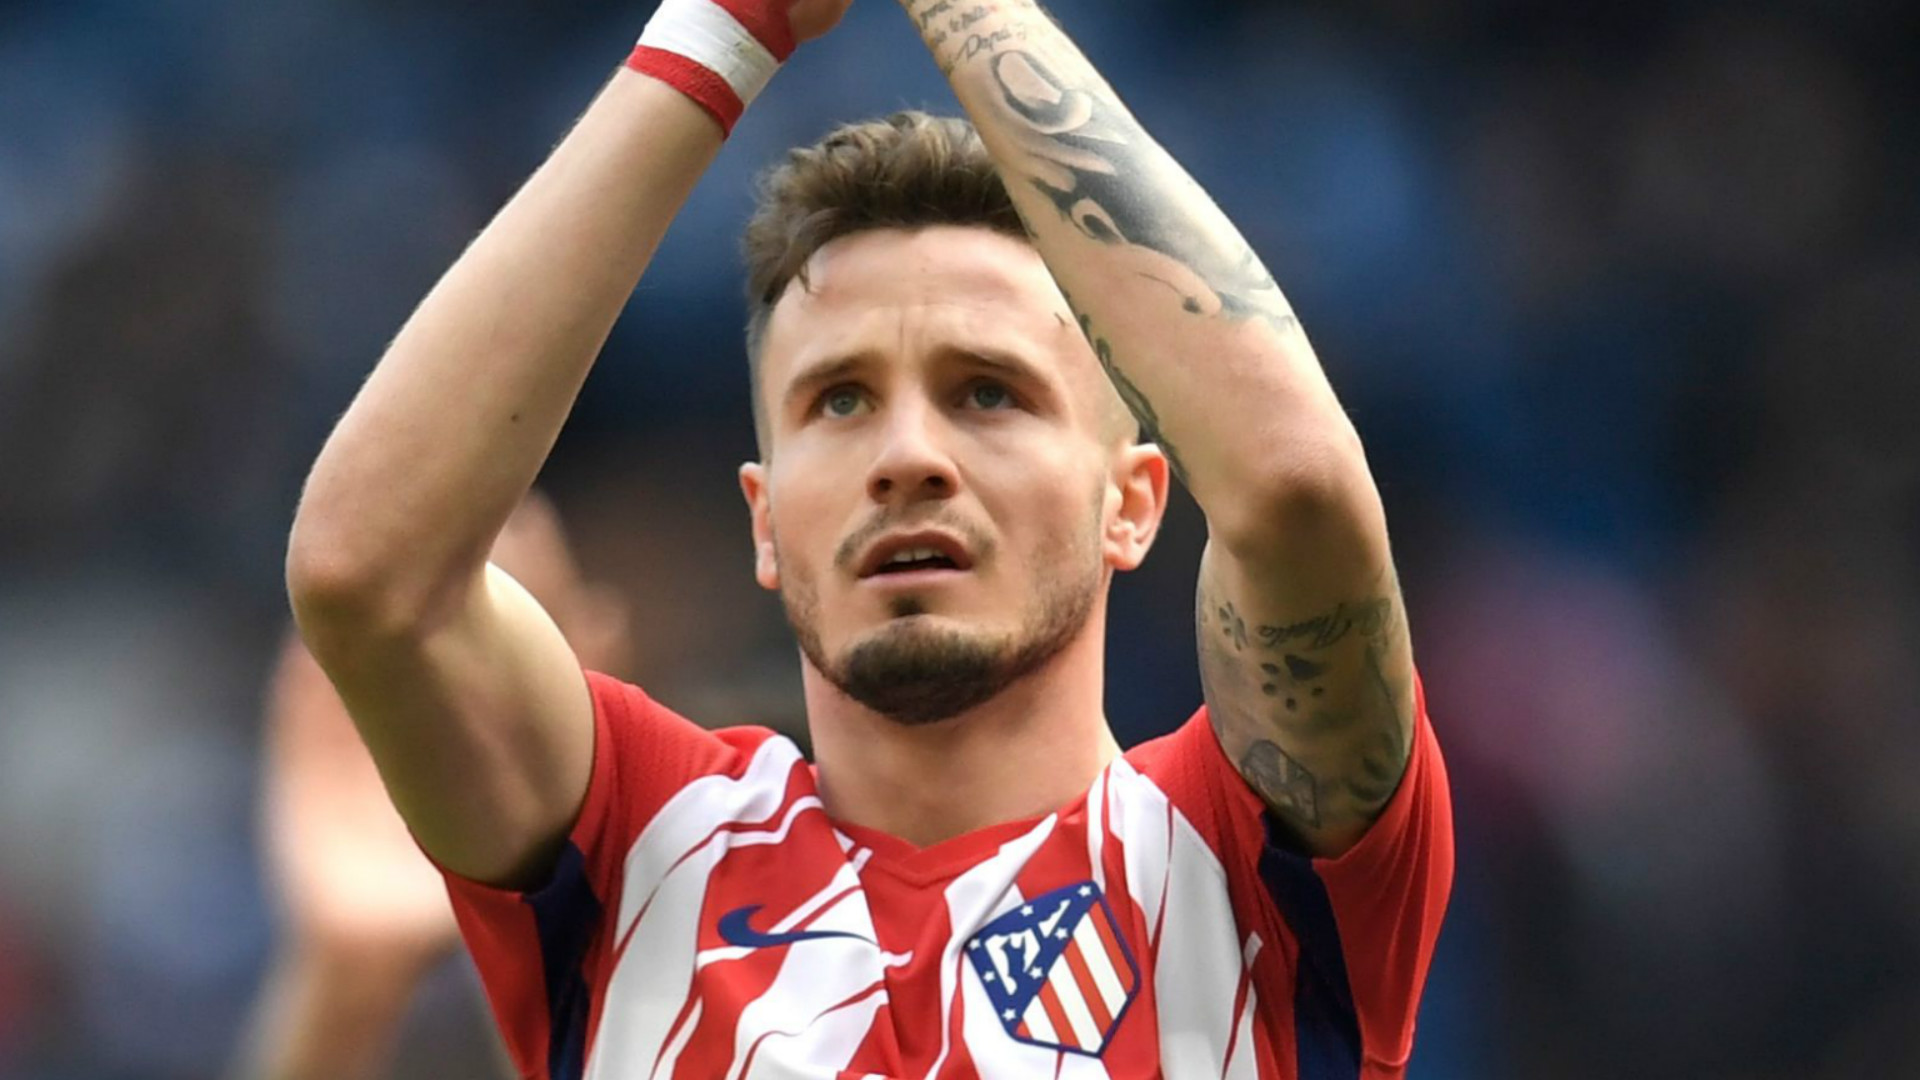 Marseille v Atletico Madrid Betting Tips: Latest odds, team news, preview and predictions